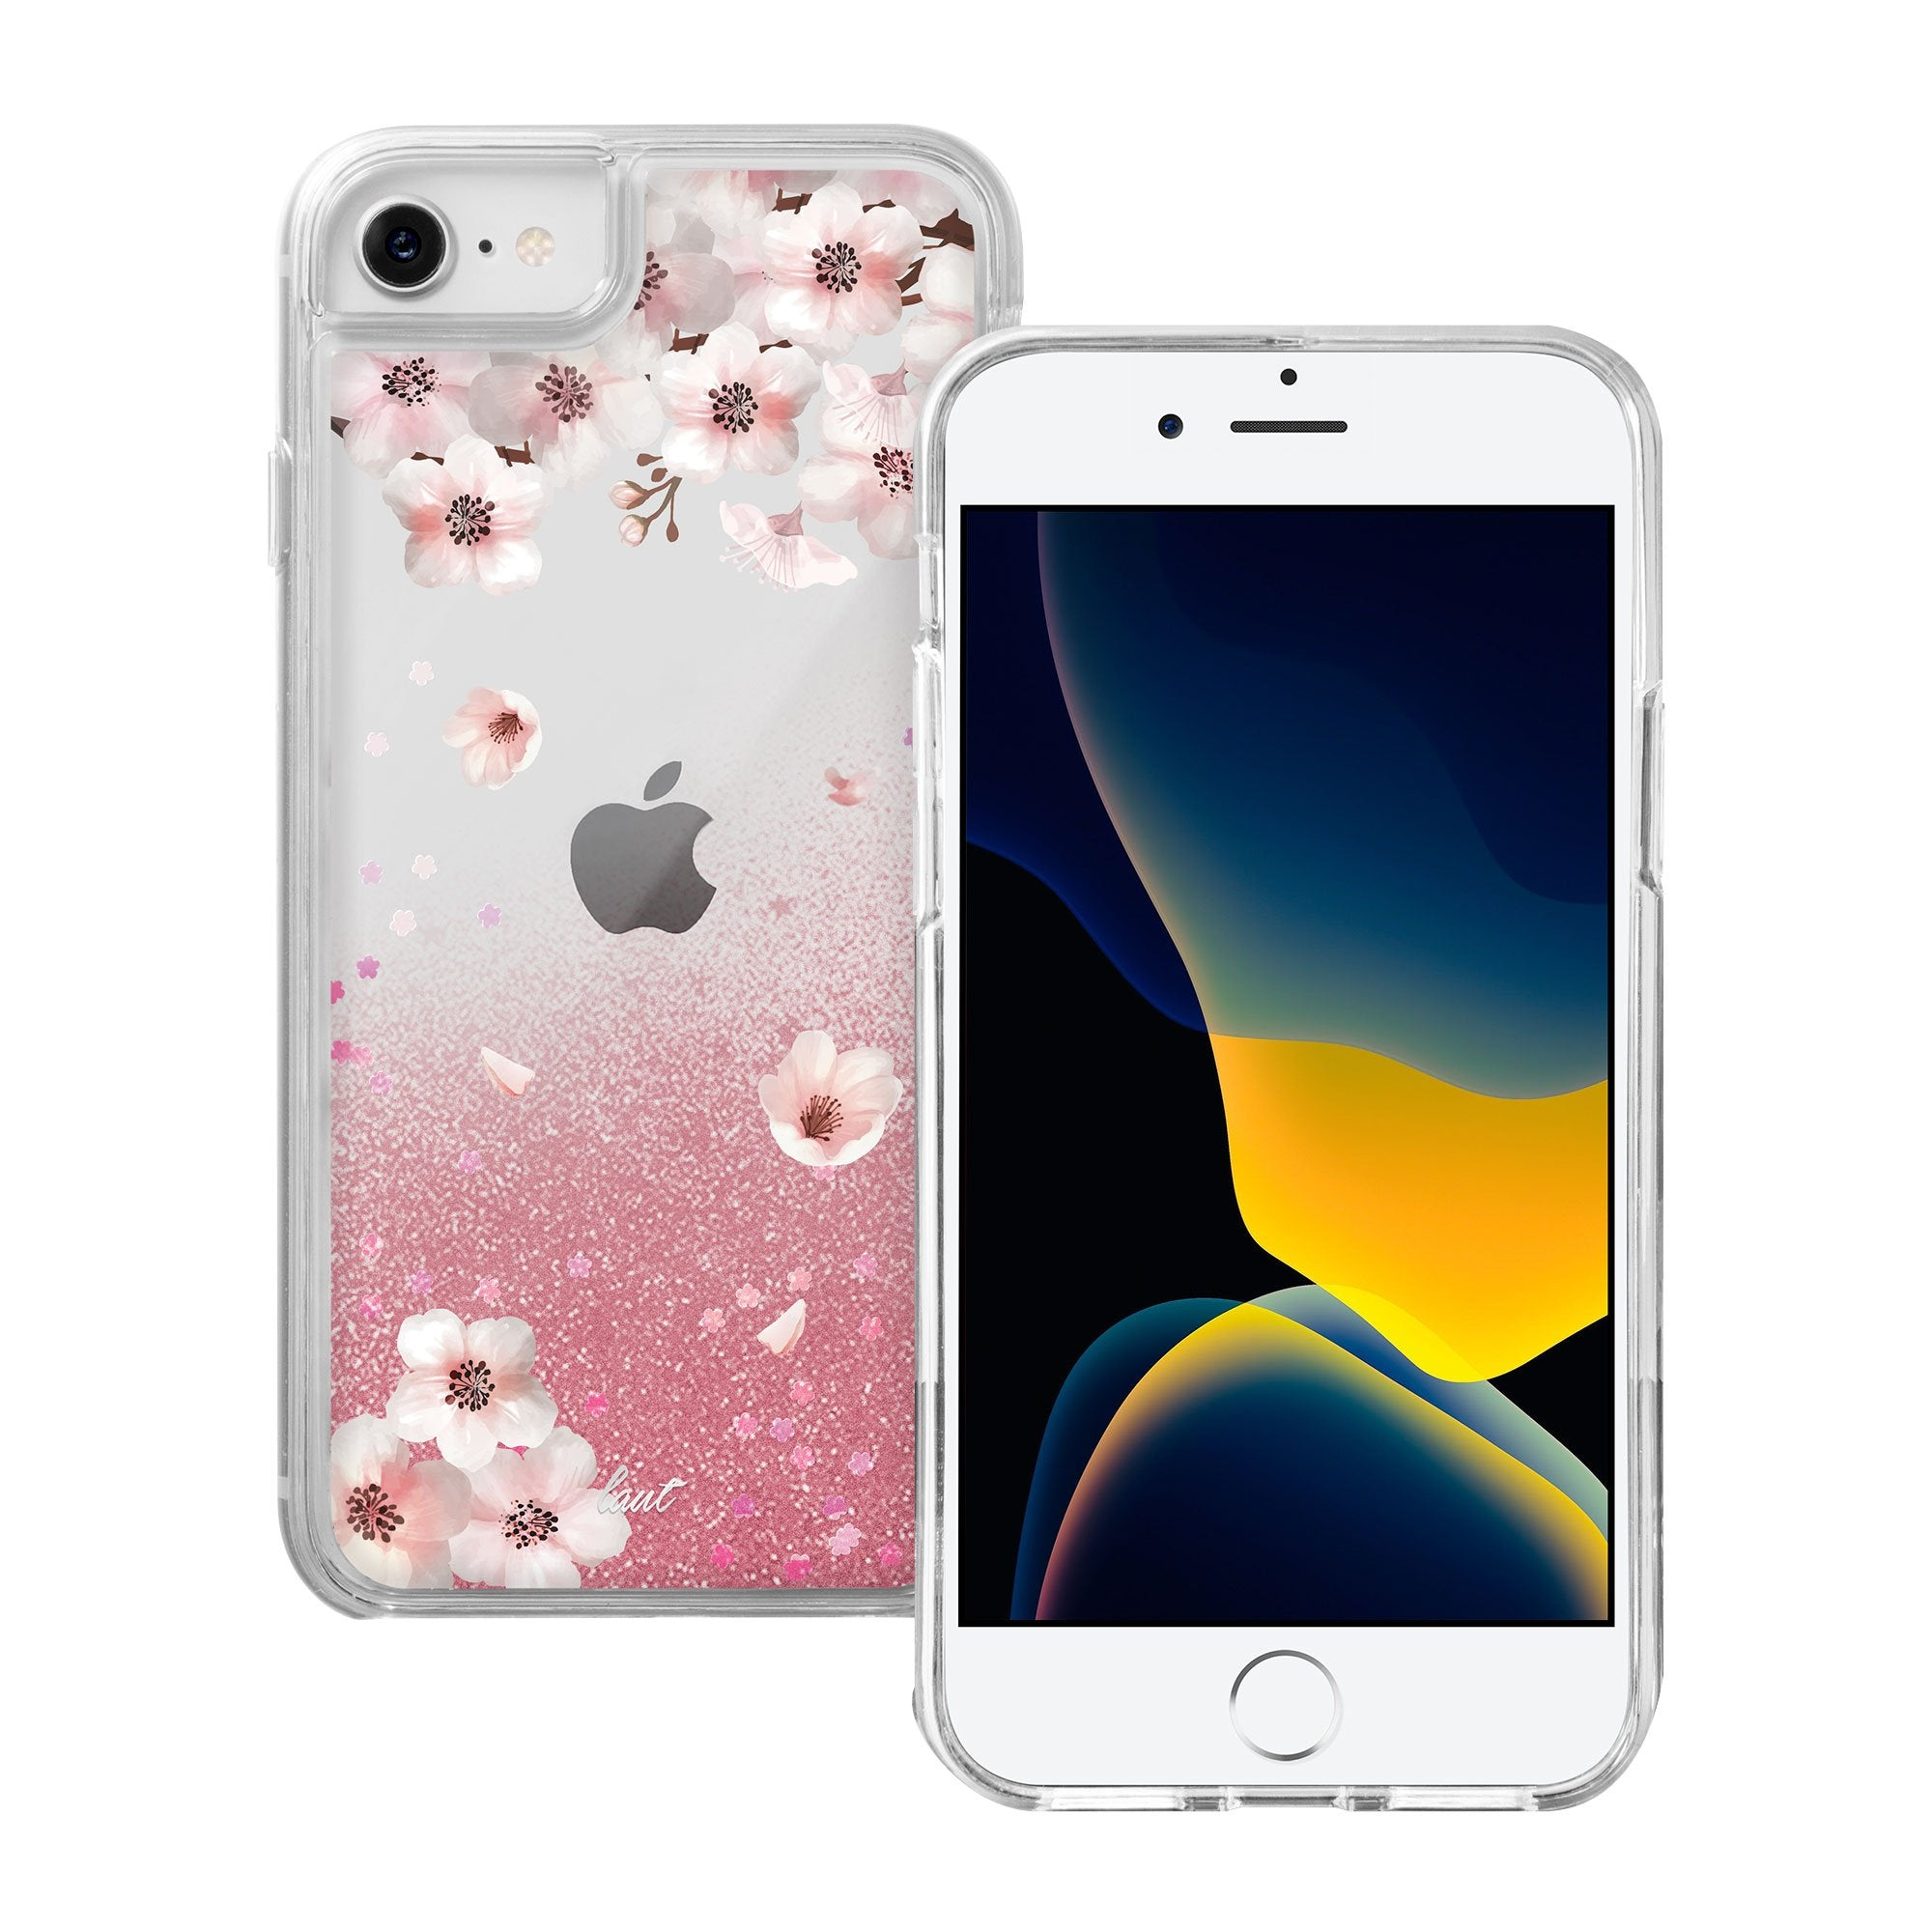 Liquid GLITTER SAKURA case for iPhone SE 2020 / iPhone 8/7